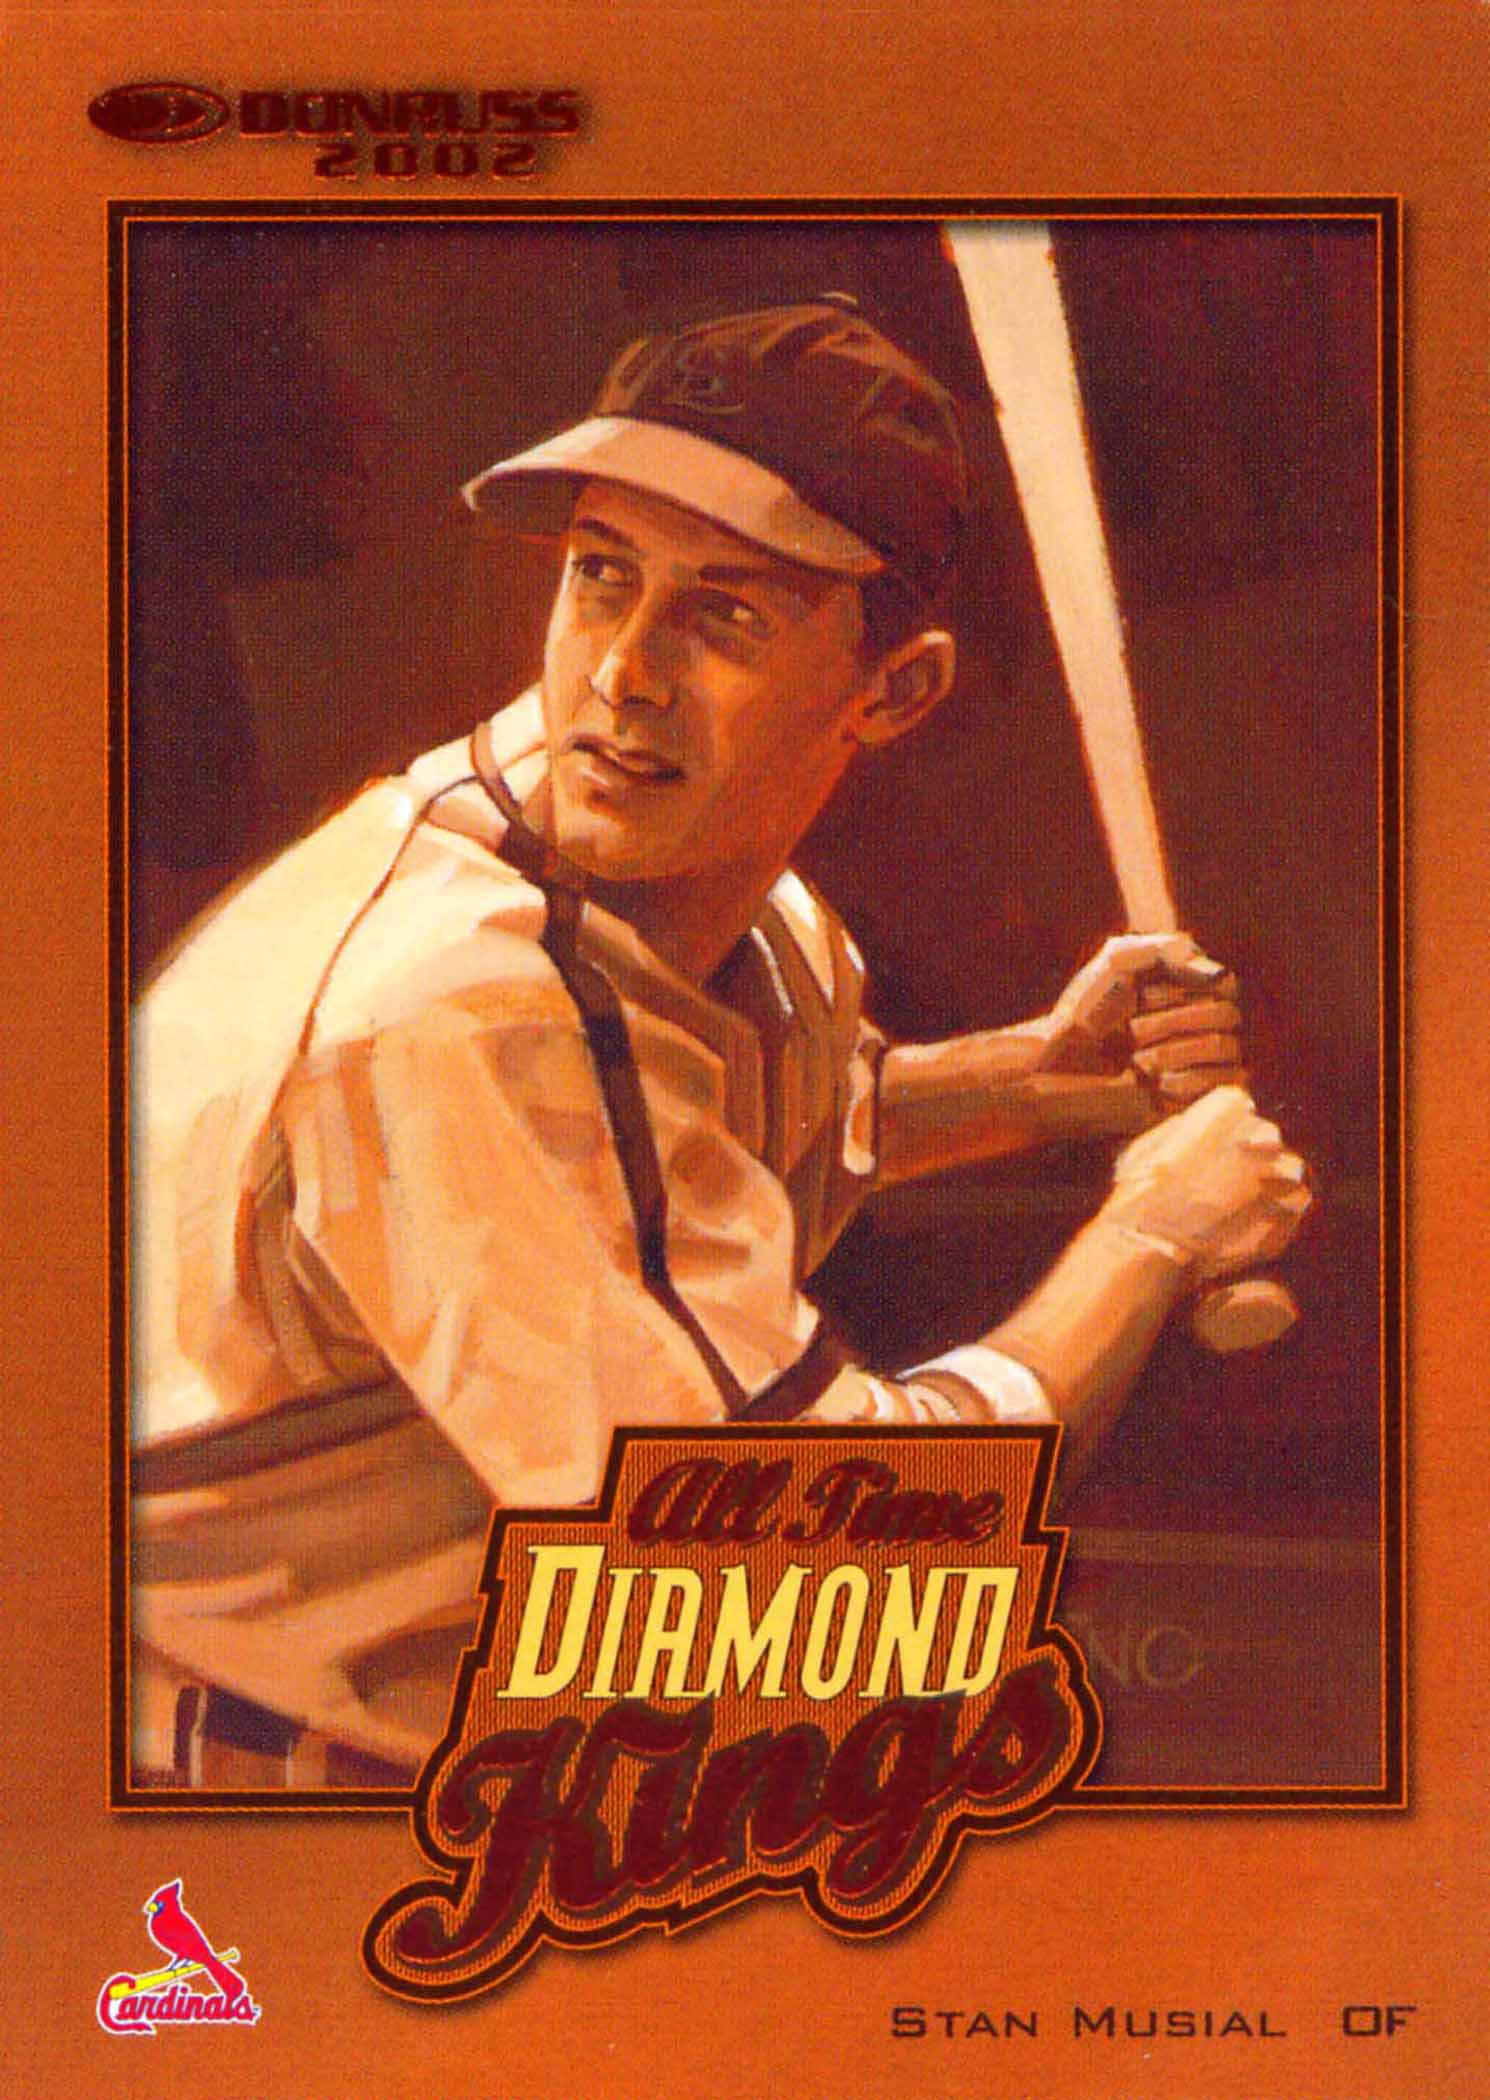 2002 Donruss All-Time Diamond Kings